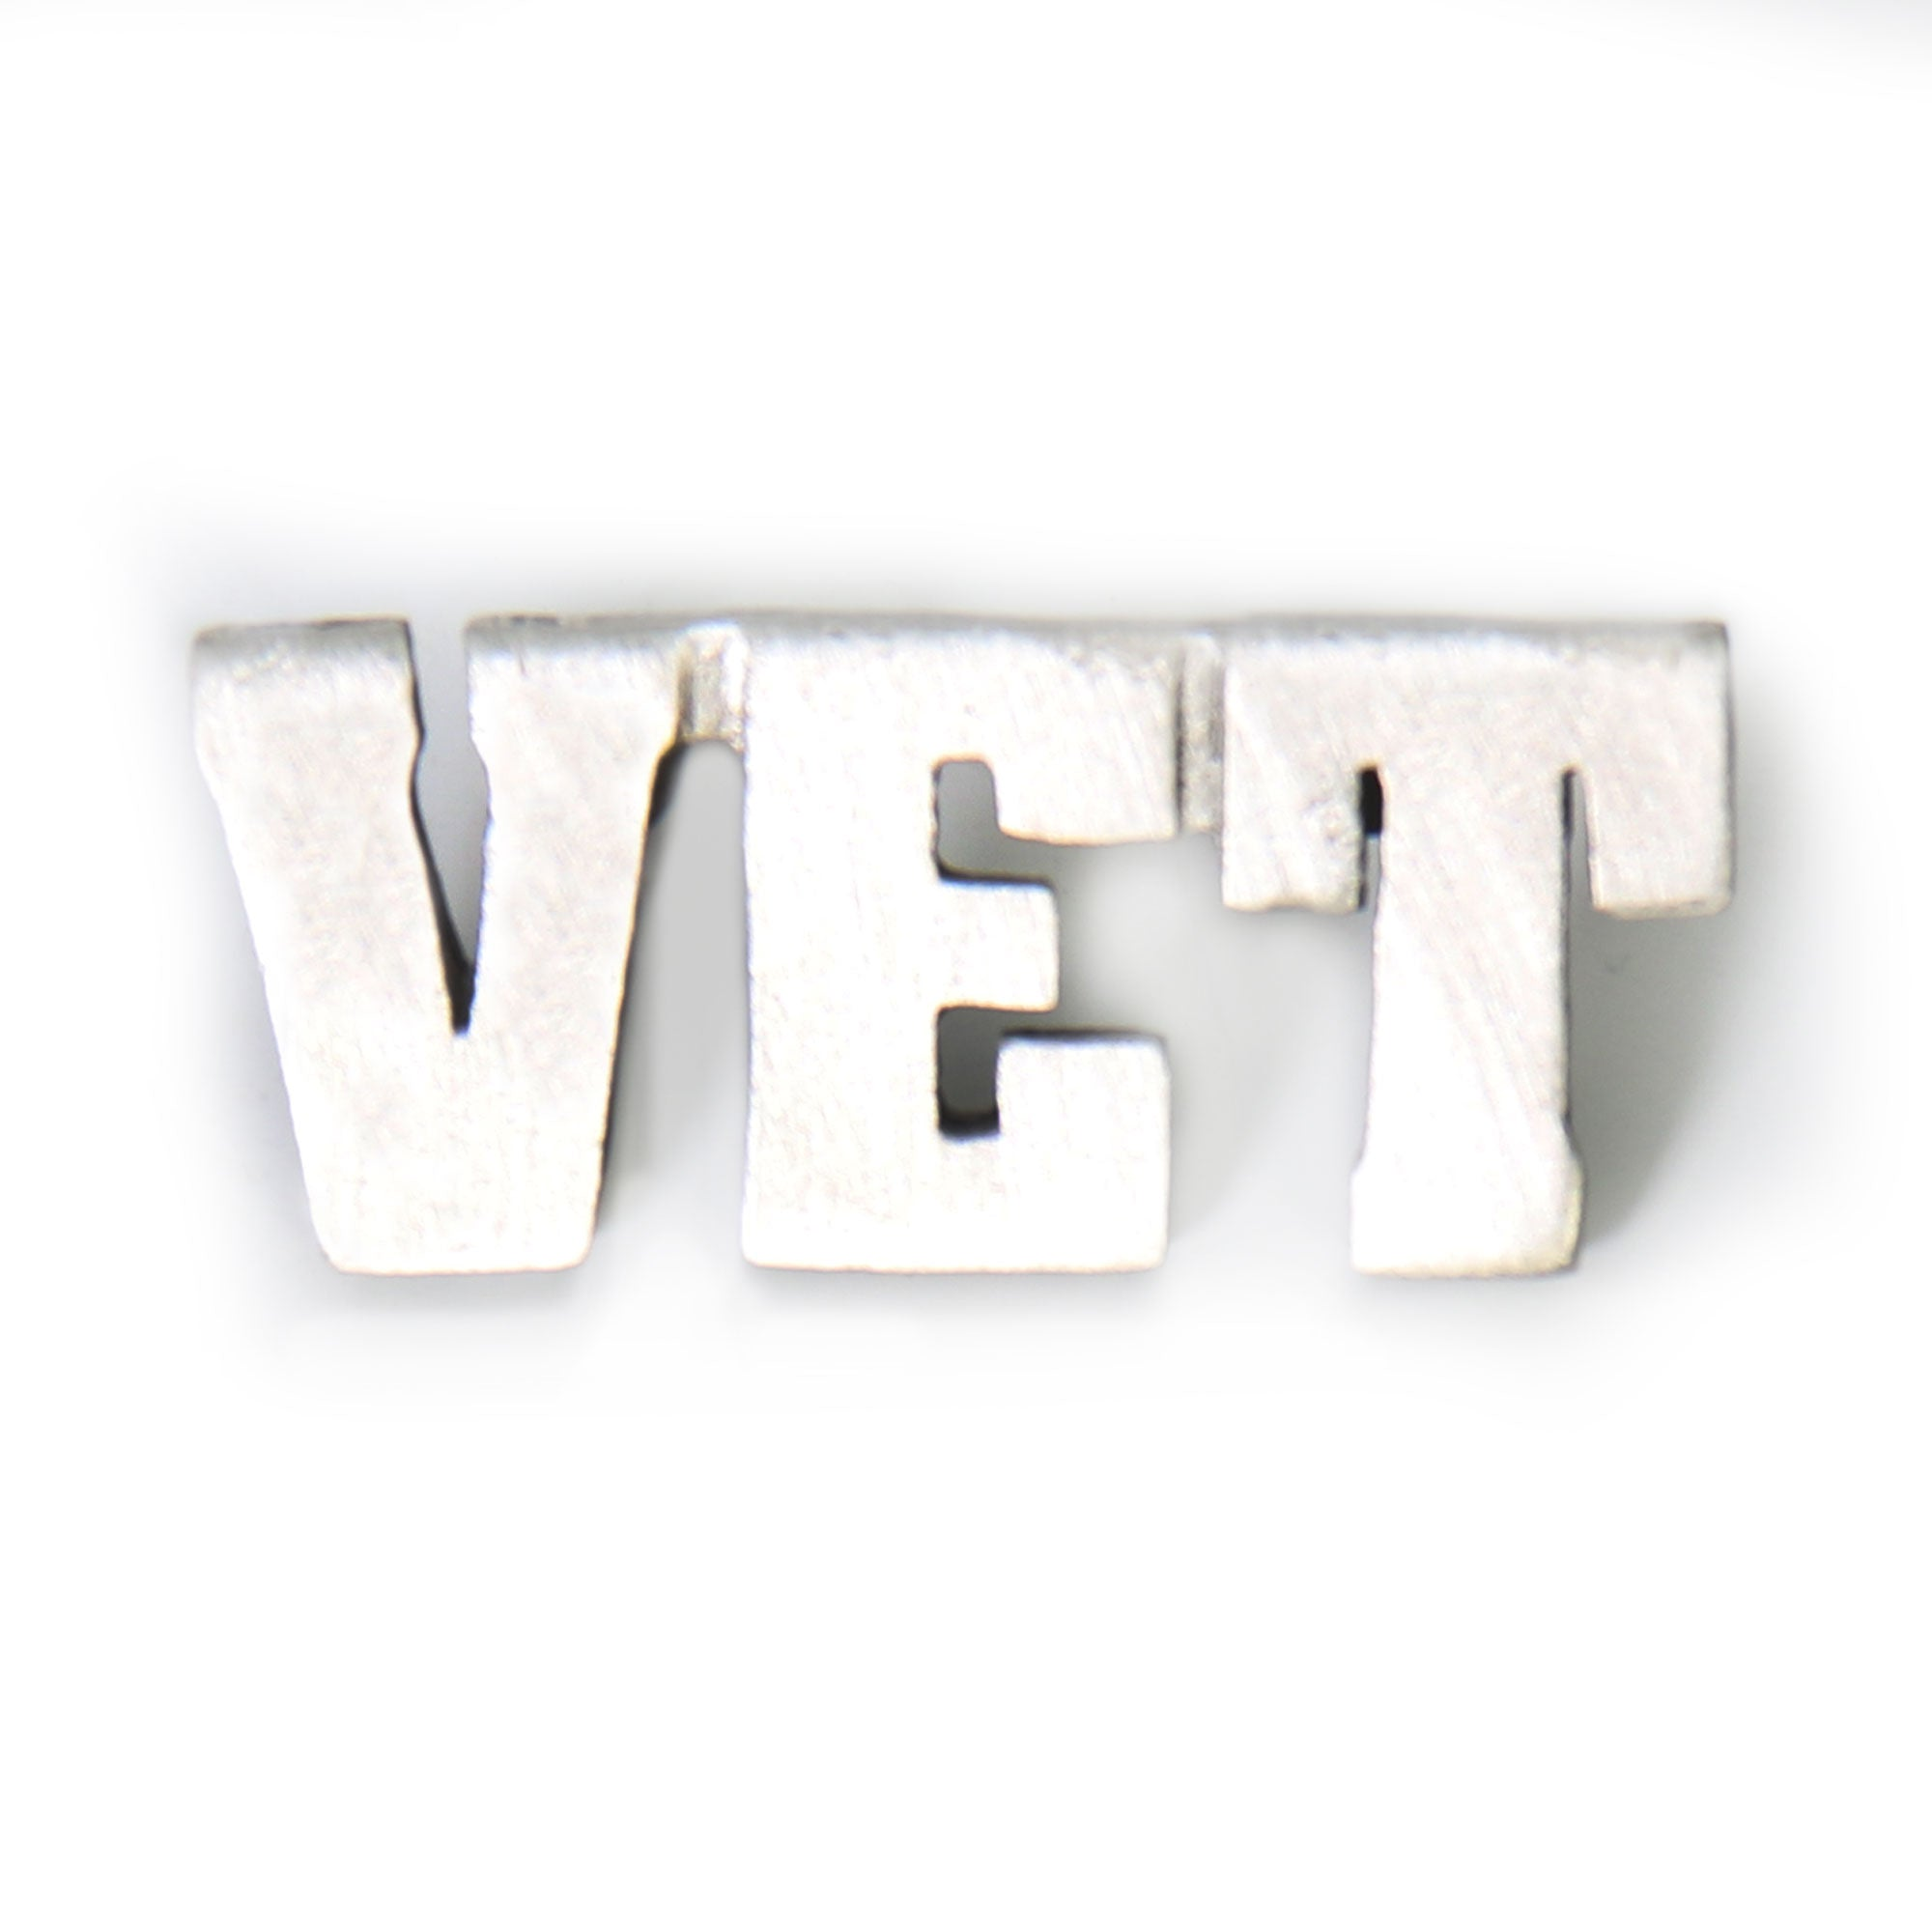 Hot Leathers VET Pin